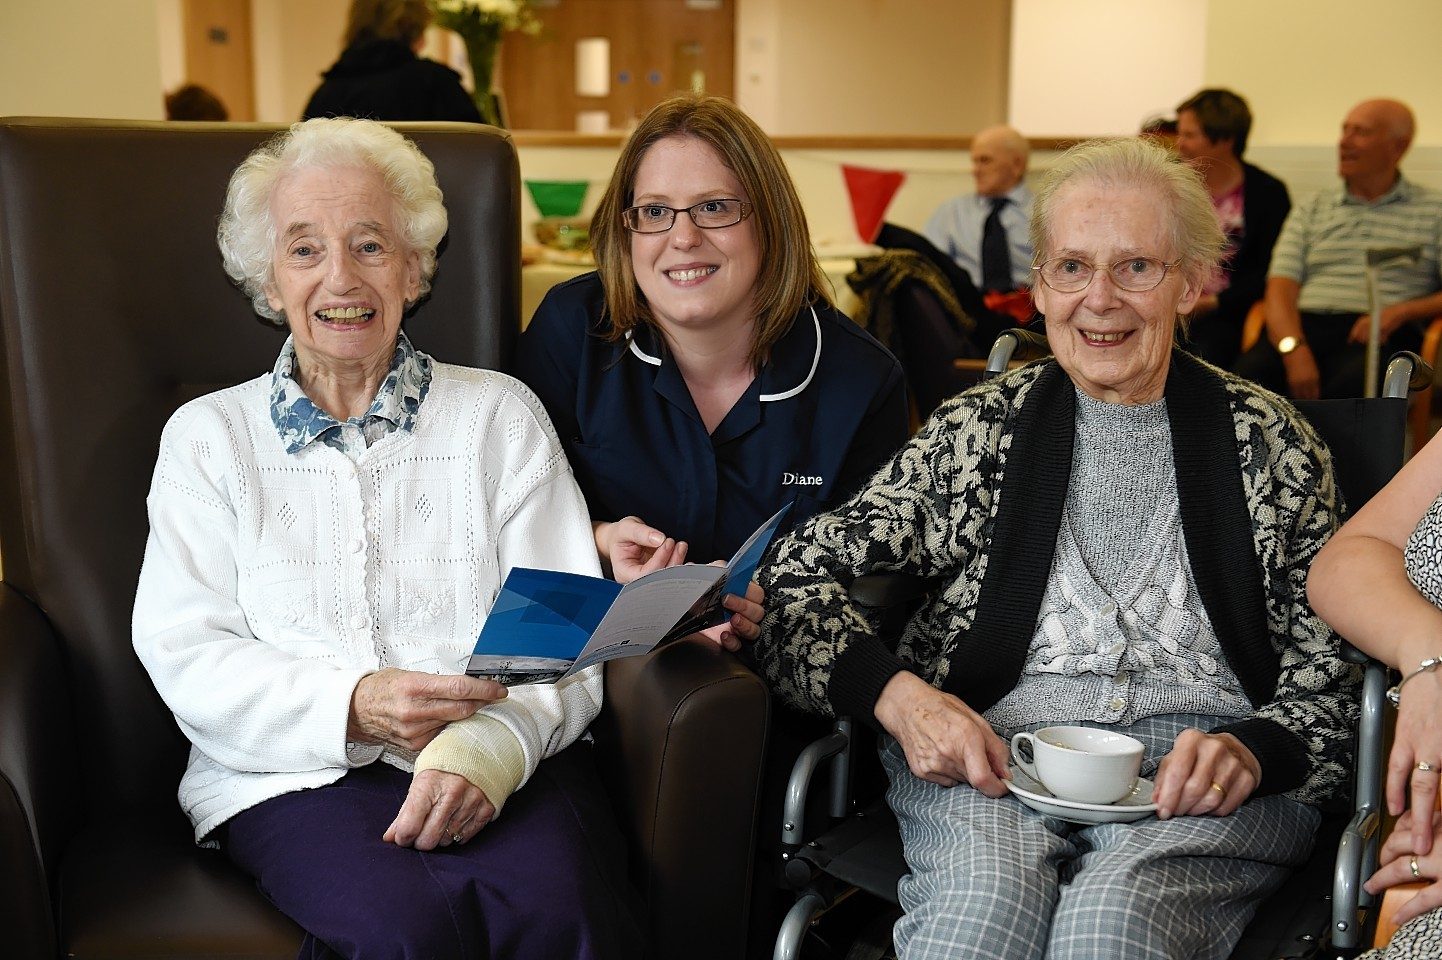 Residents and staff enjoying the ribbon cutting ceremony